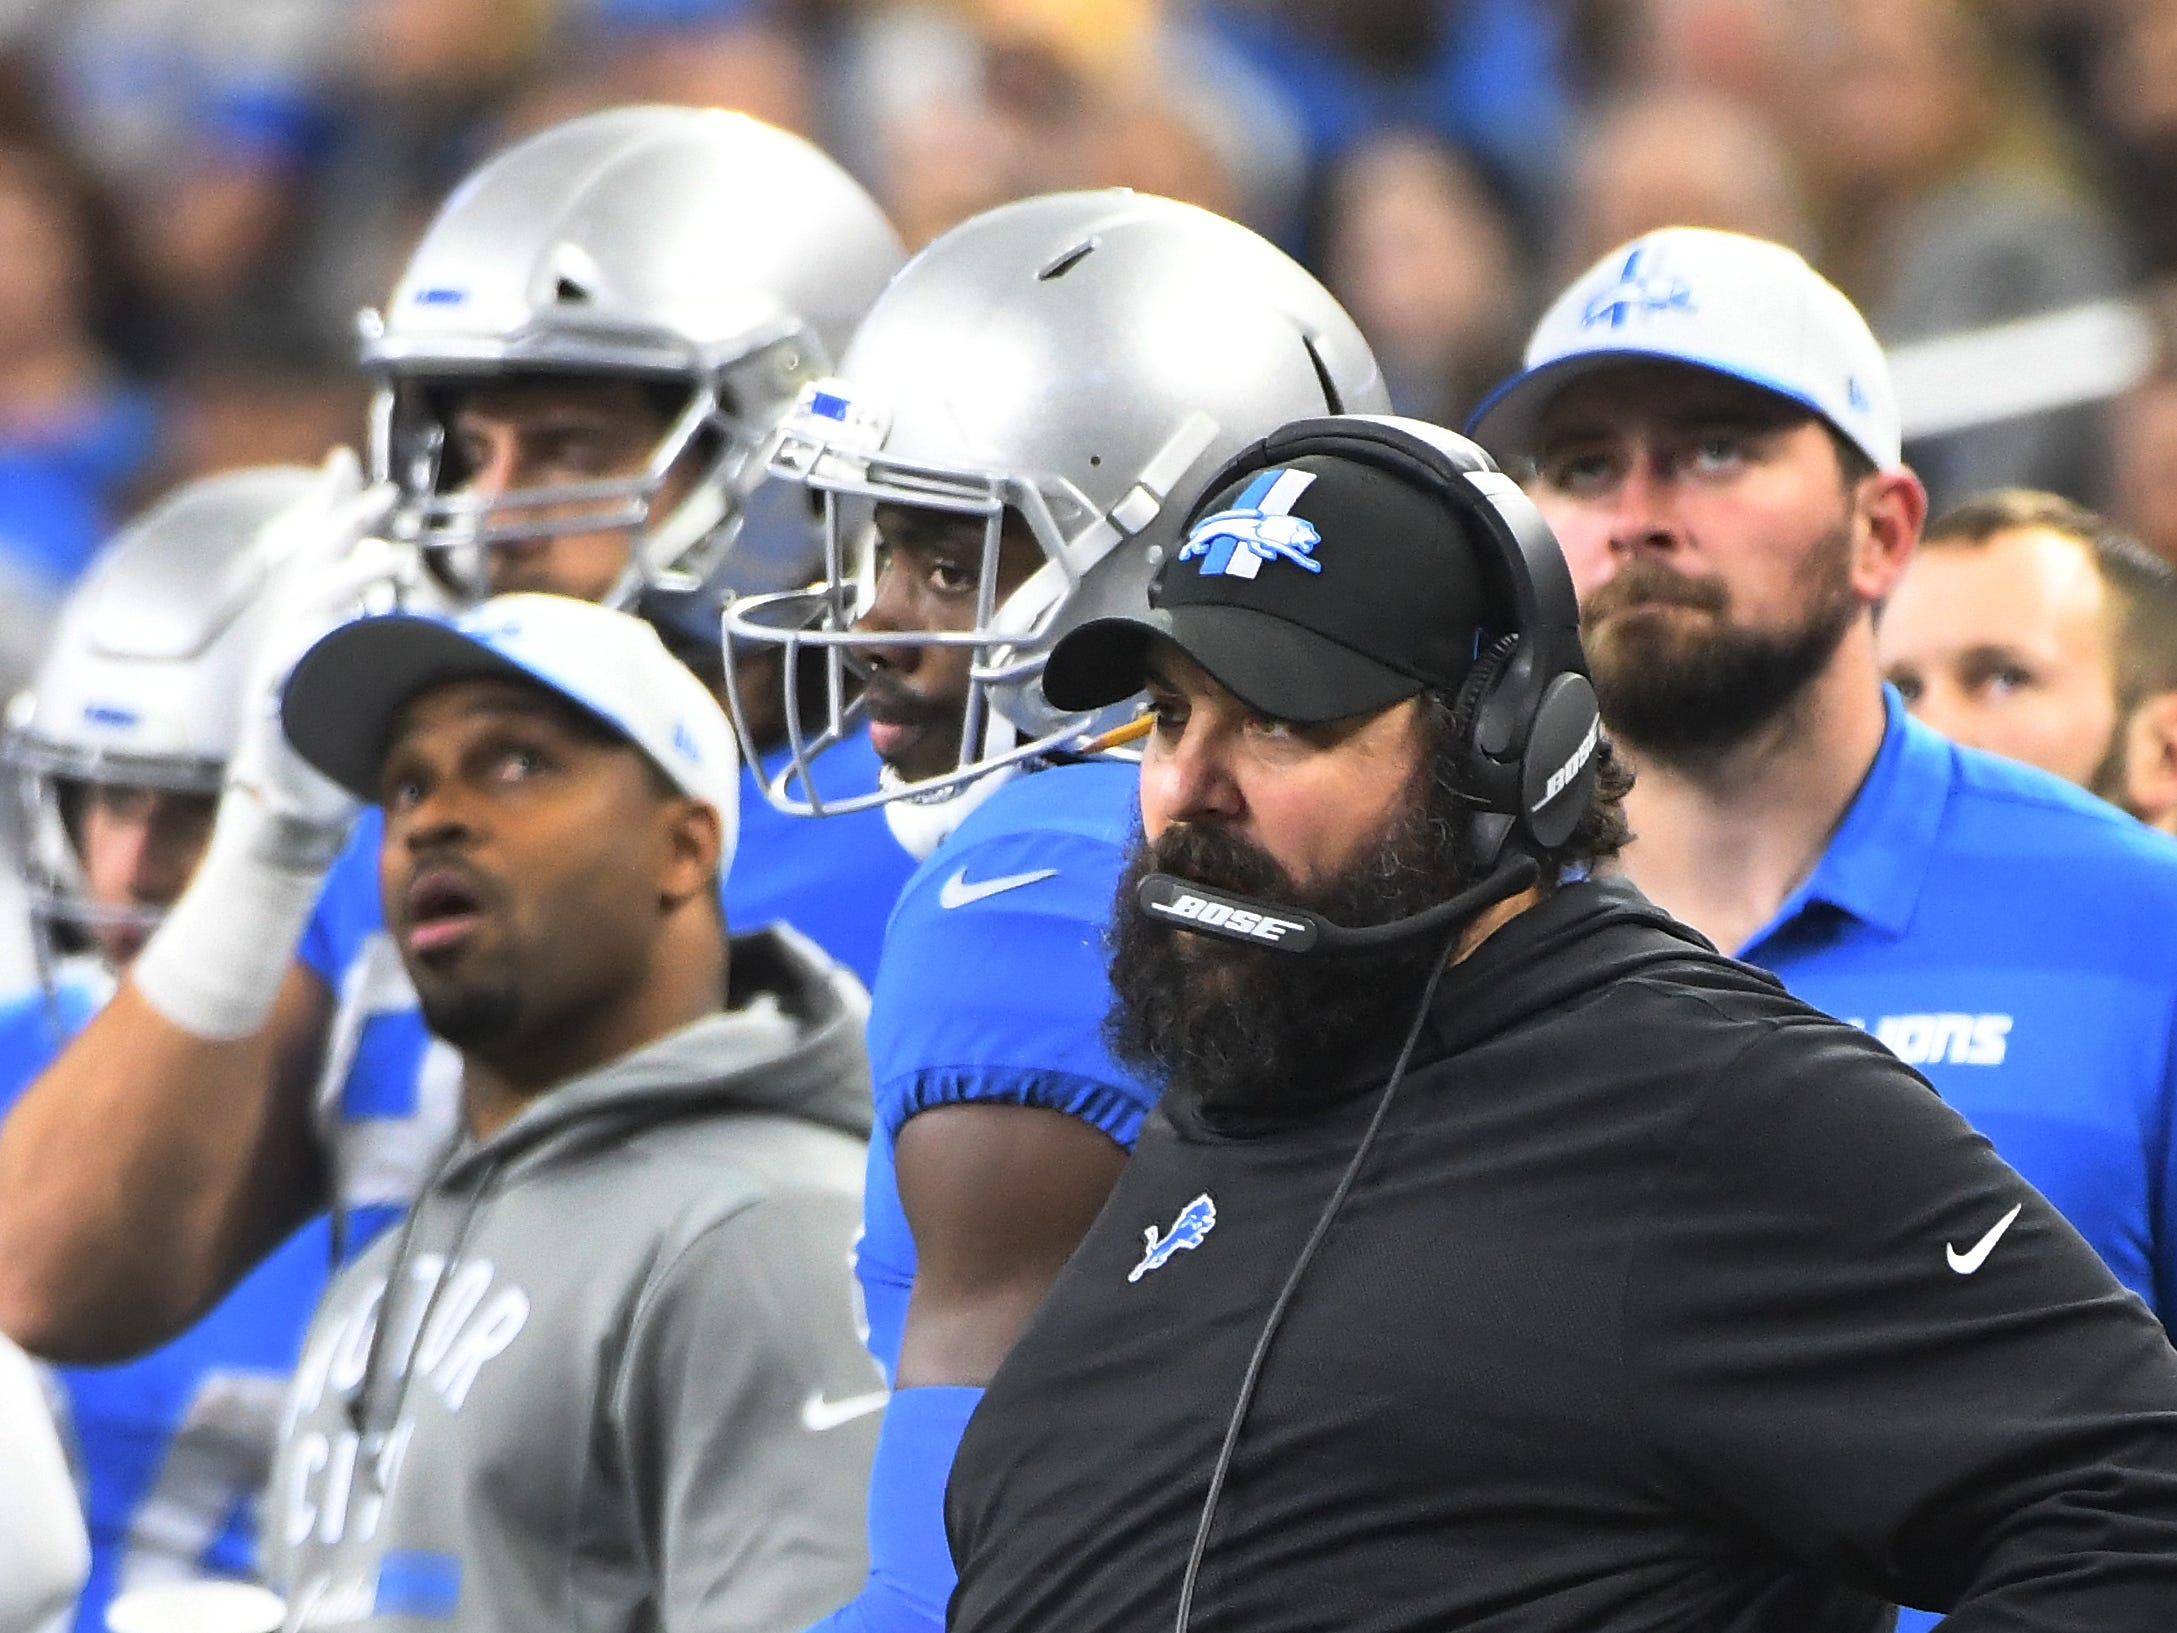 Lions coach Matt Patricia on the sidelines in the first half.